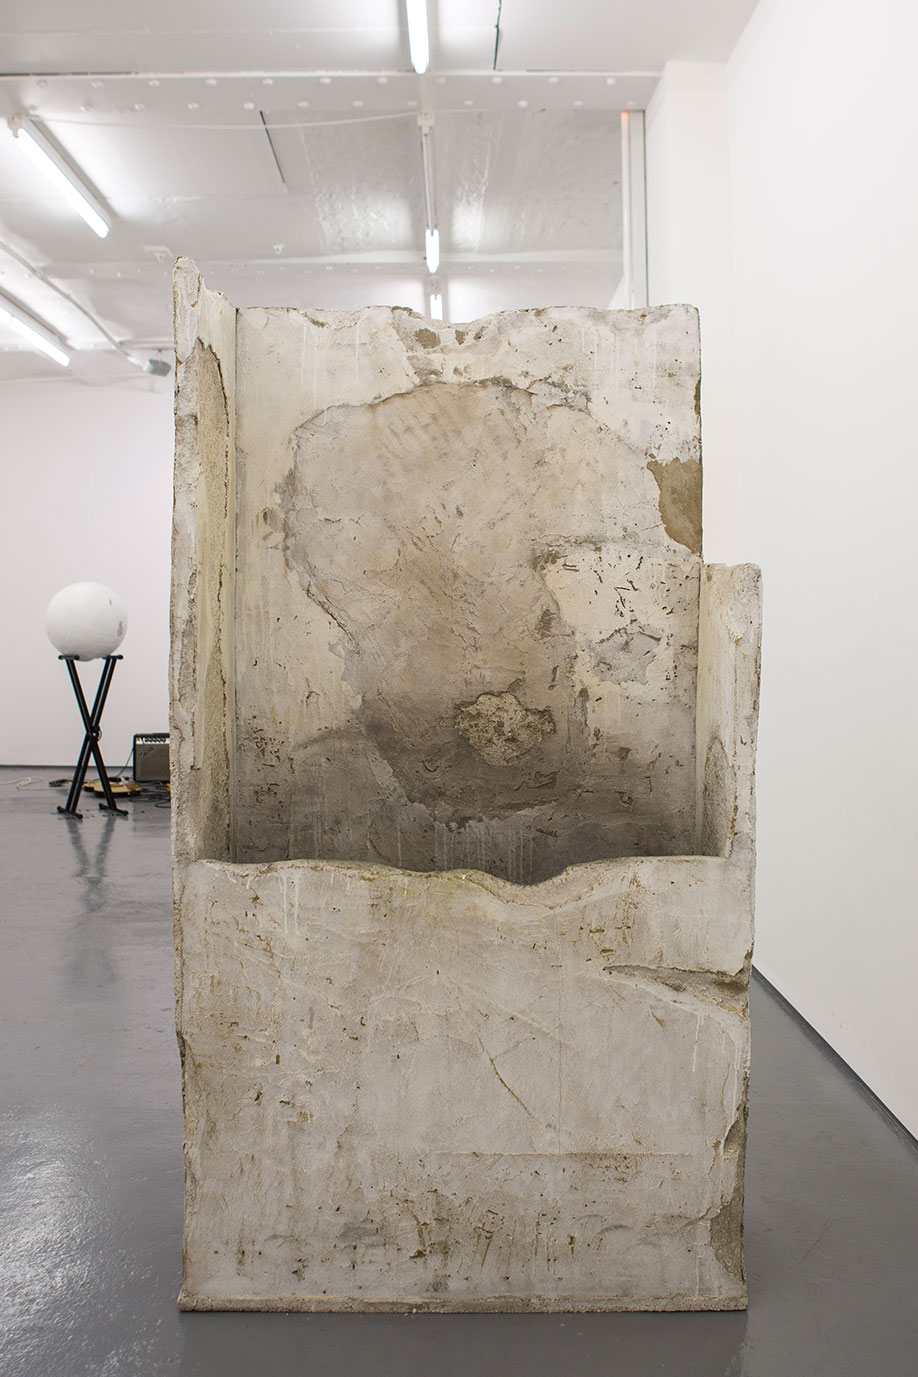 <b>Title: </b>Concrete Container, by Ana Genovés<br /><b>Year: </b>2015<br /><b>Medium: </b>Polystyrene and cement<br /><b>Size: </b>92 x 170 x 37 cm